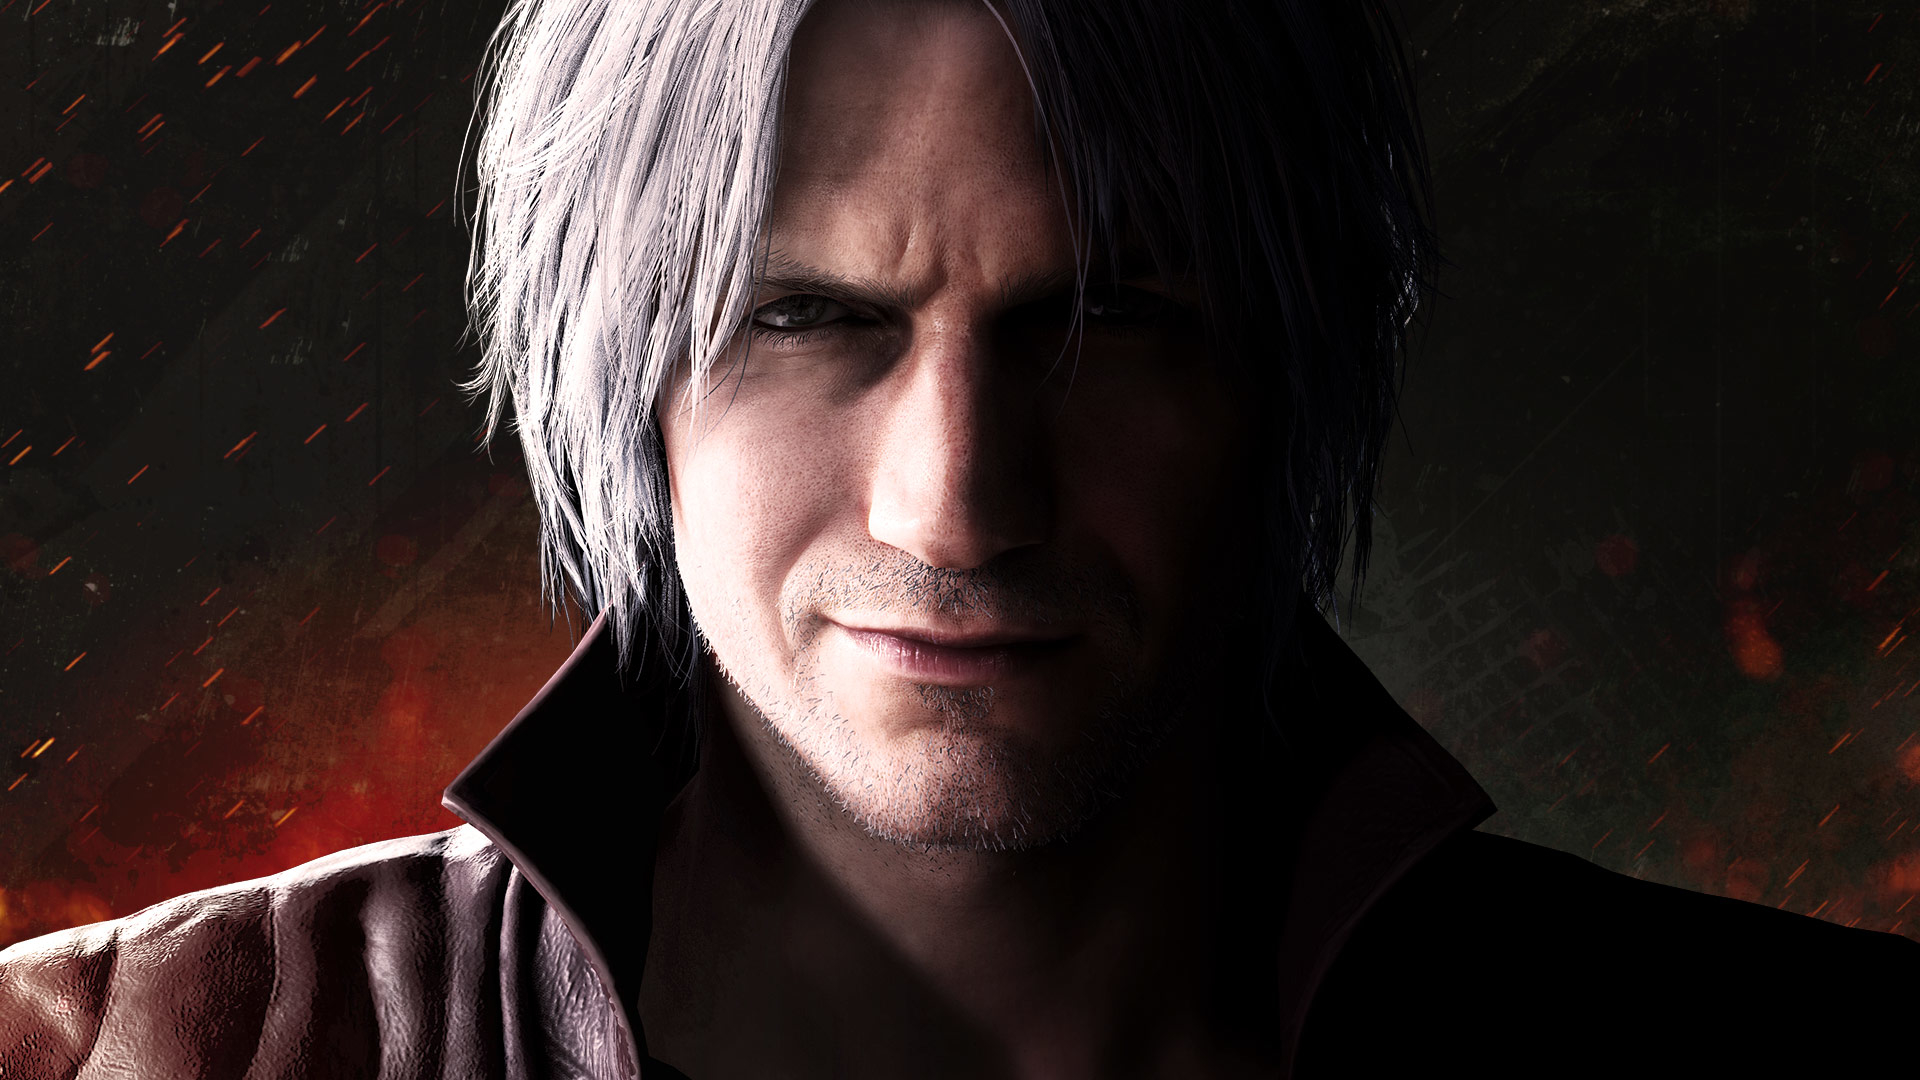 Dante Devil May Cry 5 Wallpaper Hd Games 4k Wallpapers Images